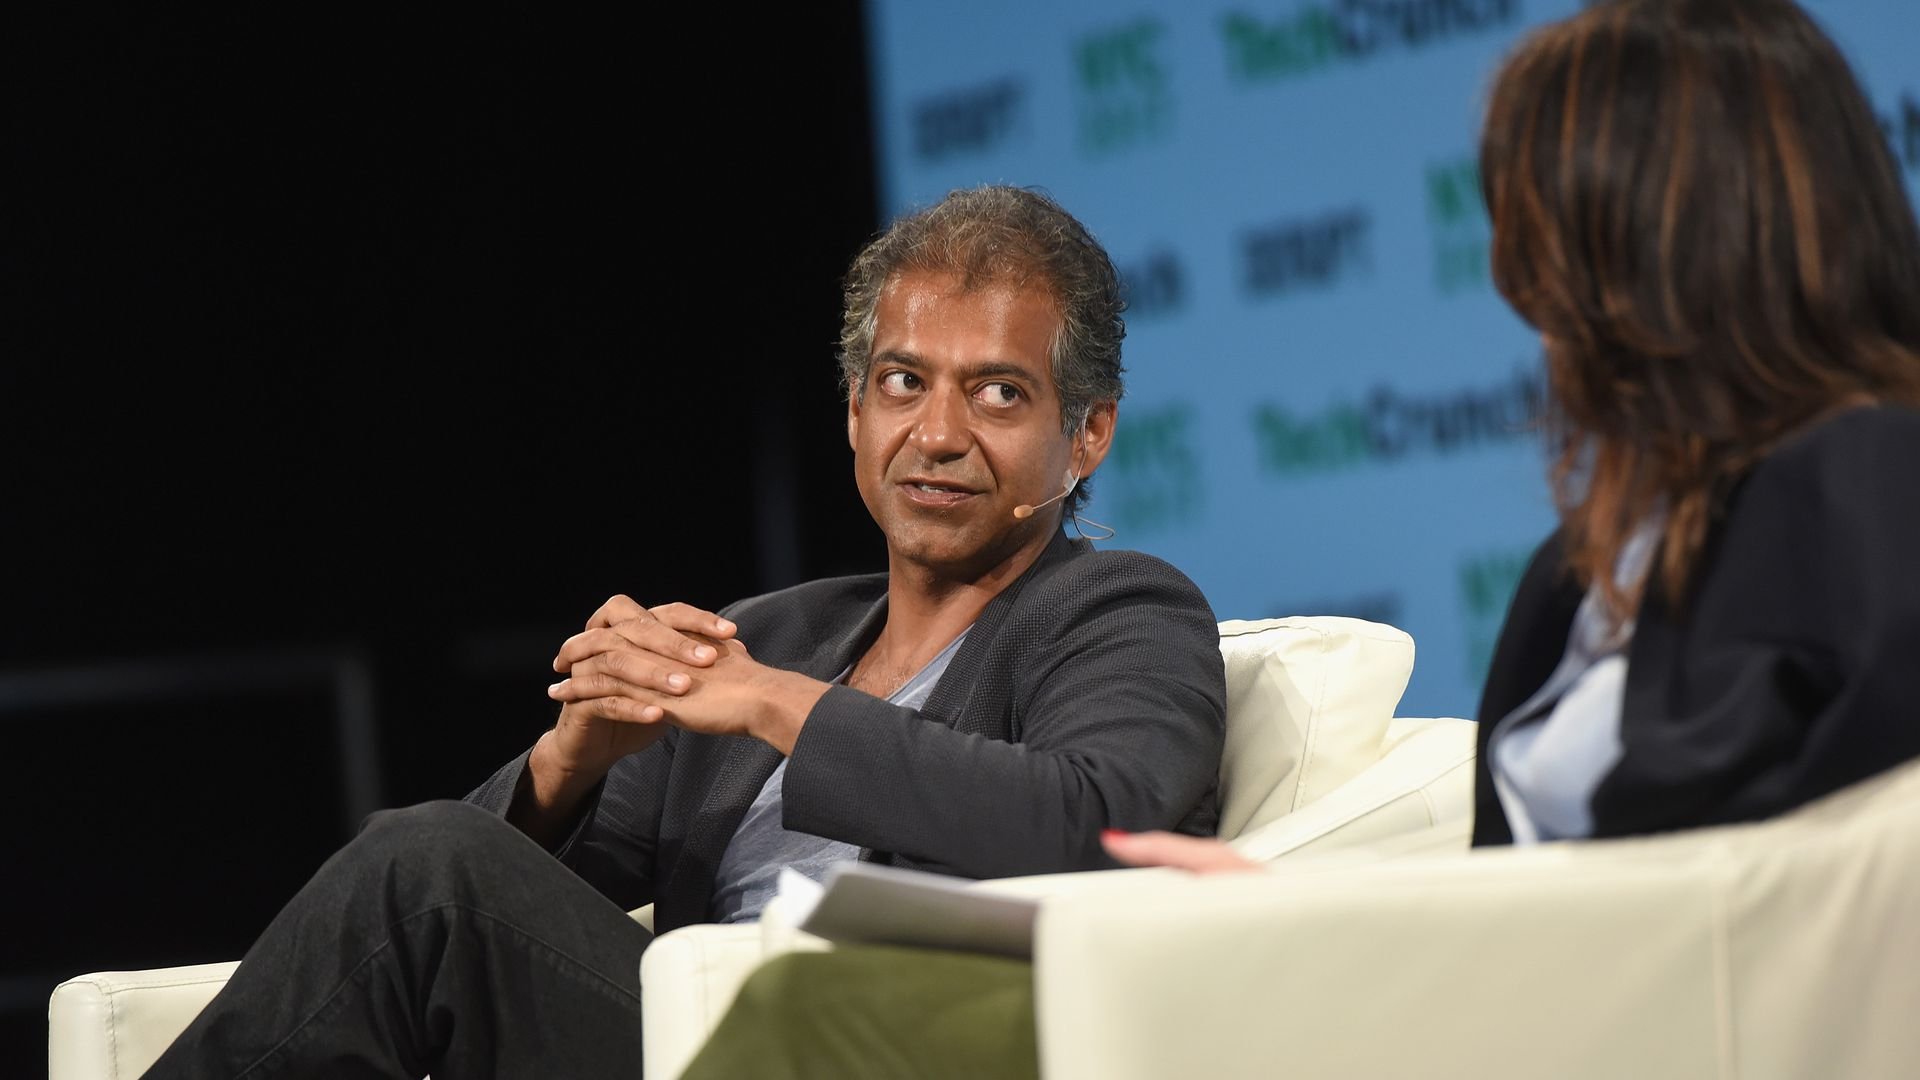 AngelList's VC funds have raised over $100 million